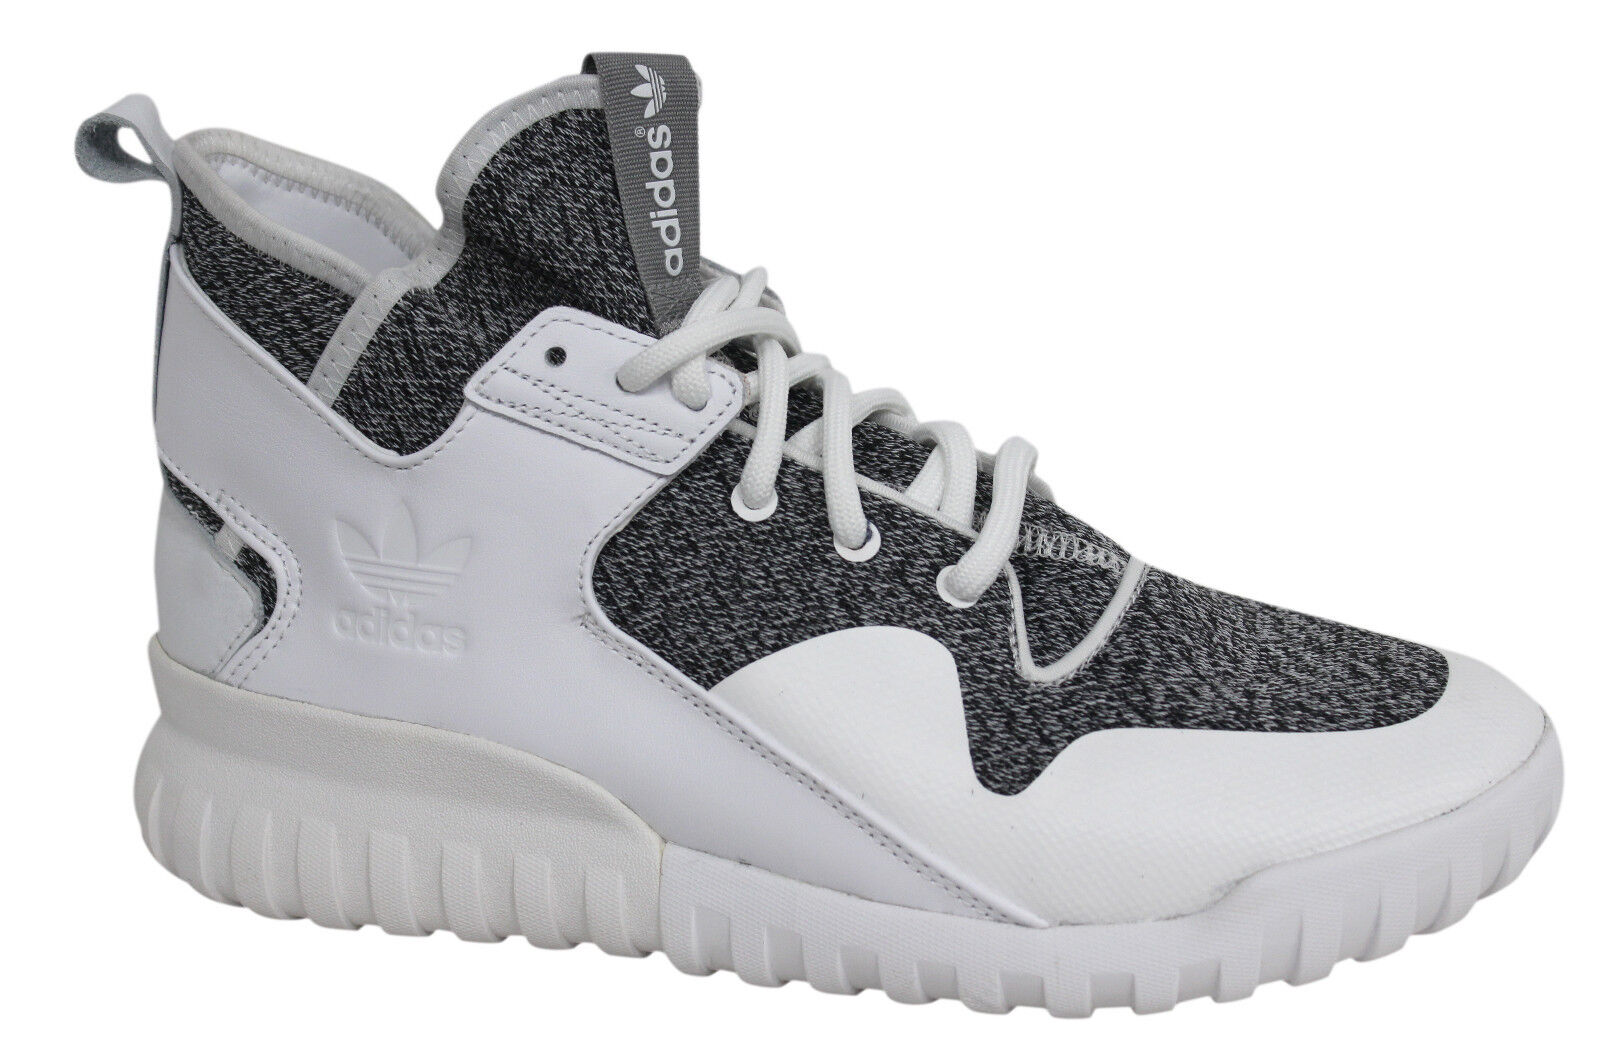 Adidas Originals Tubular X Lace Up White Grey Mens Trainers S74928 U4